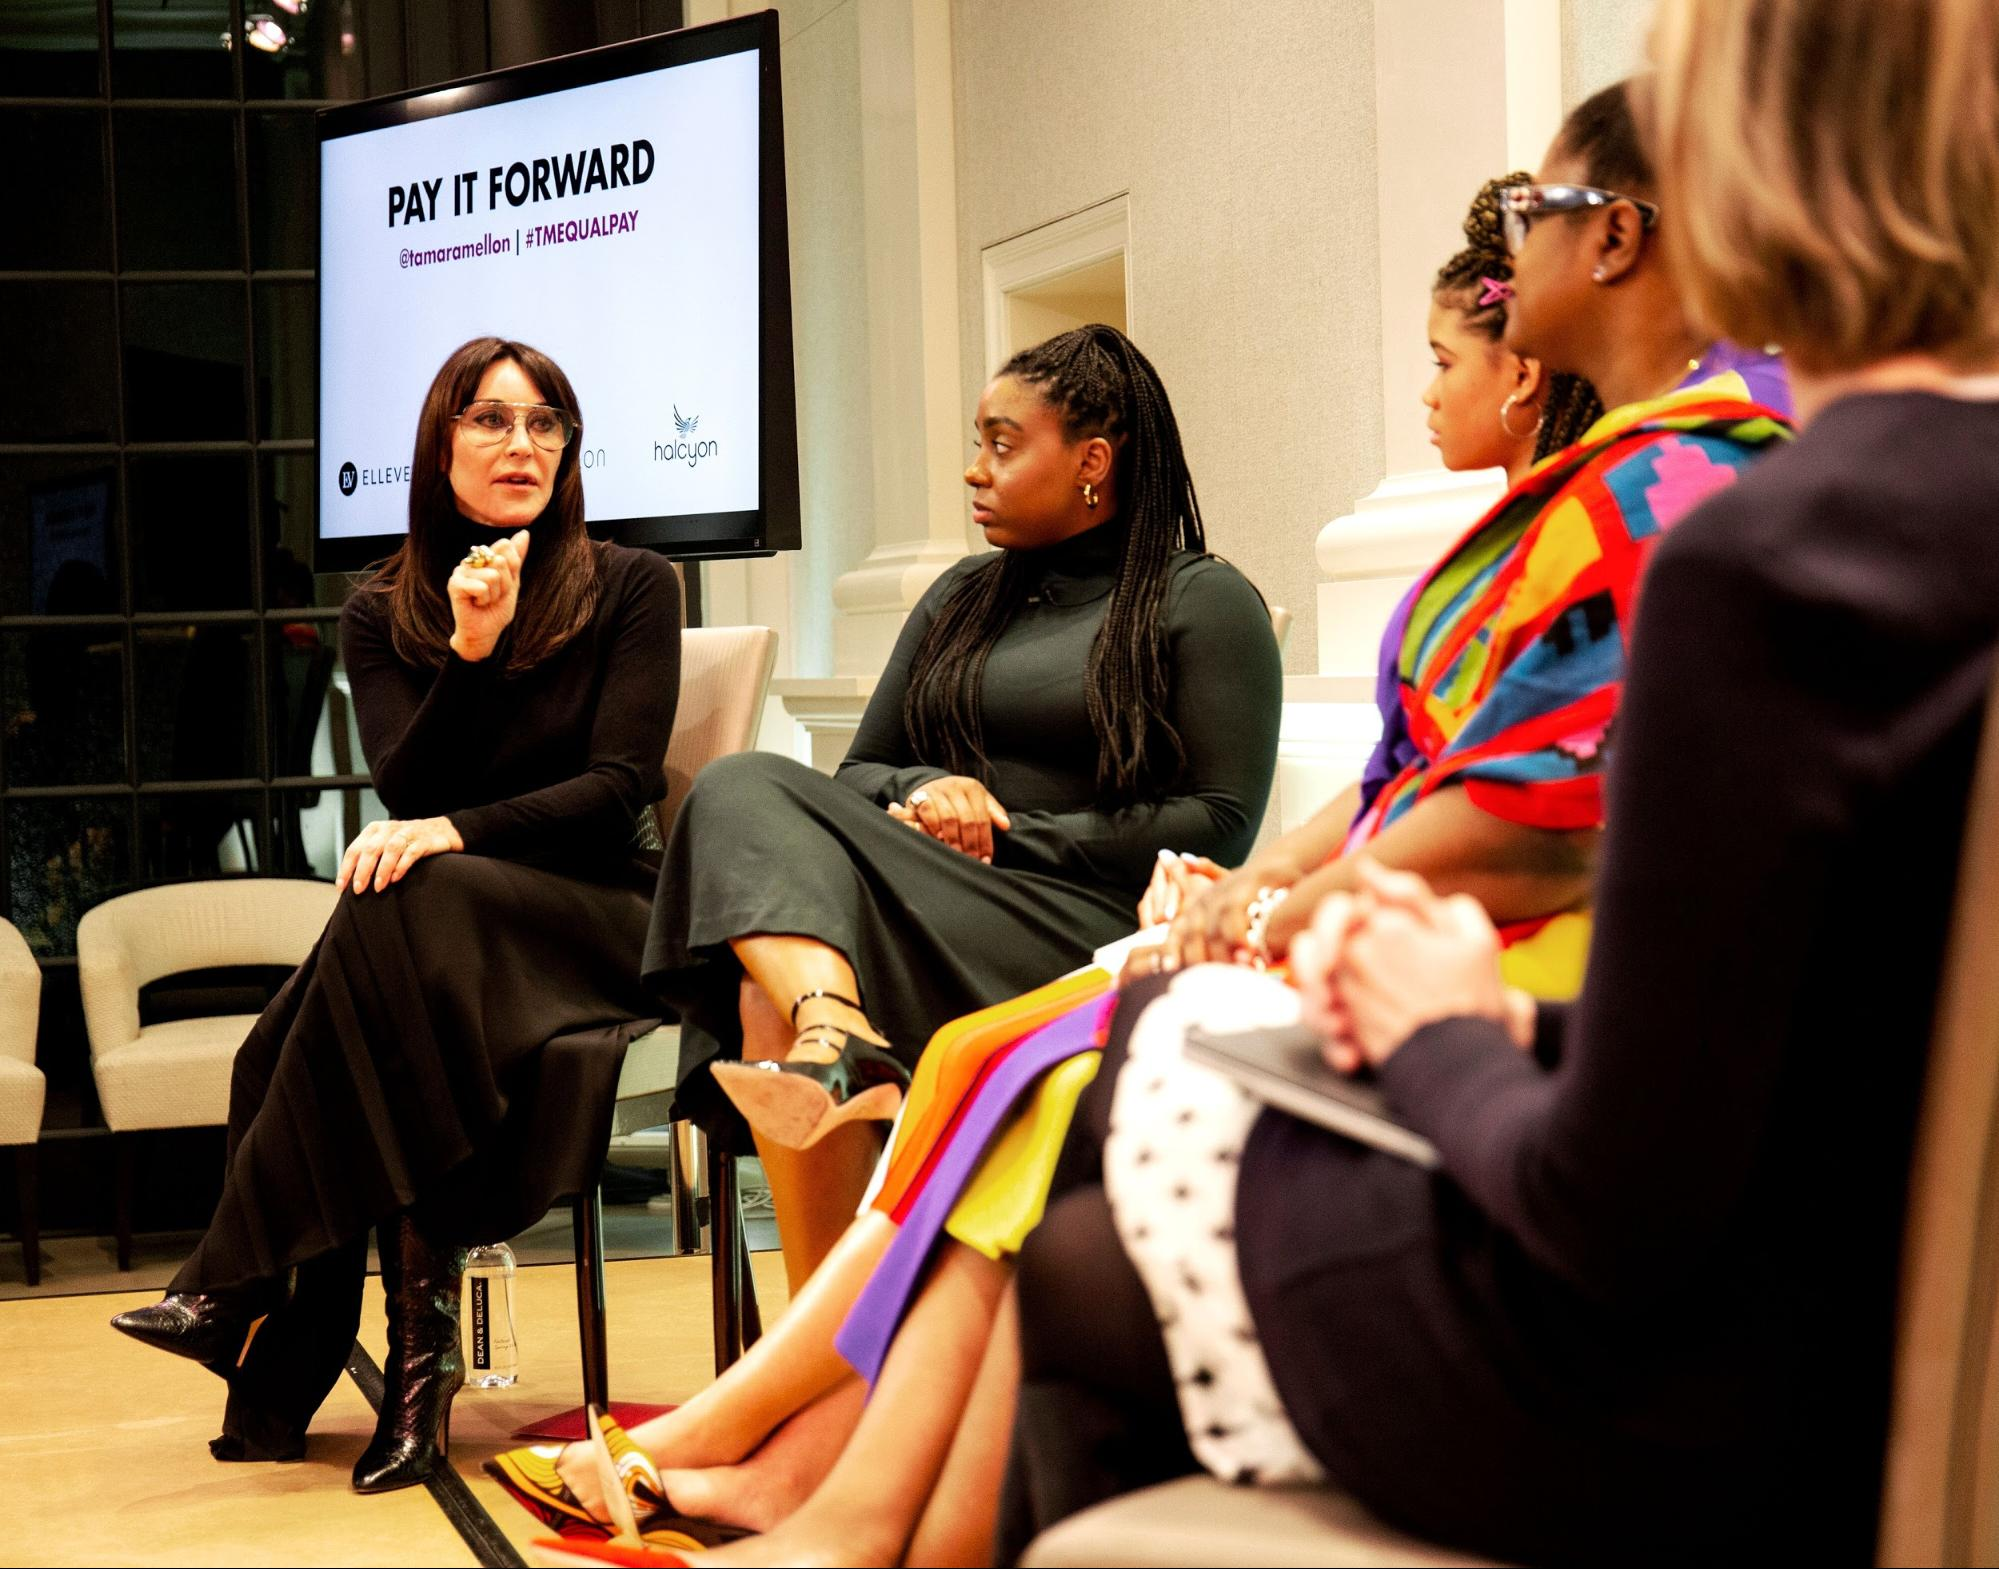 Tamara Mellon speaking to other women